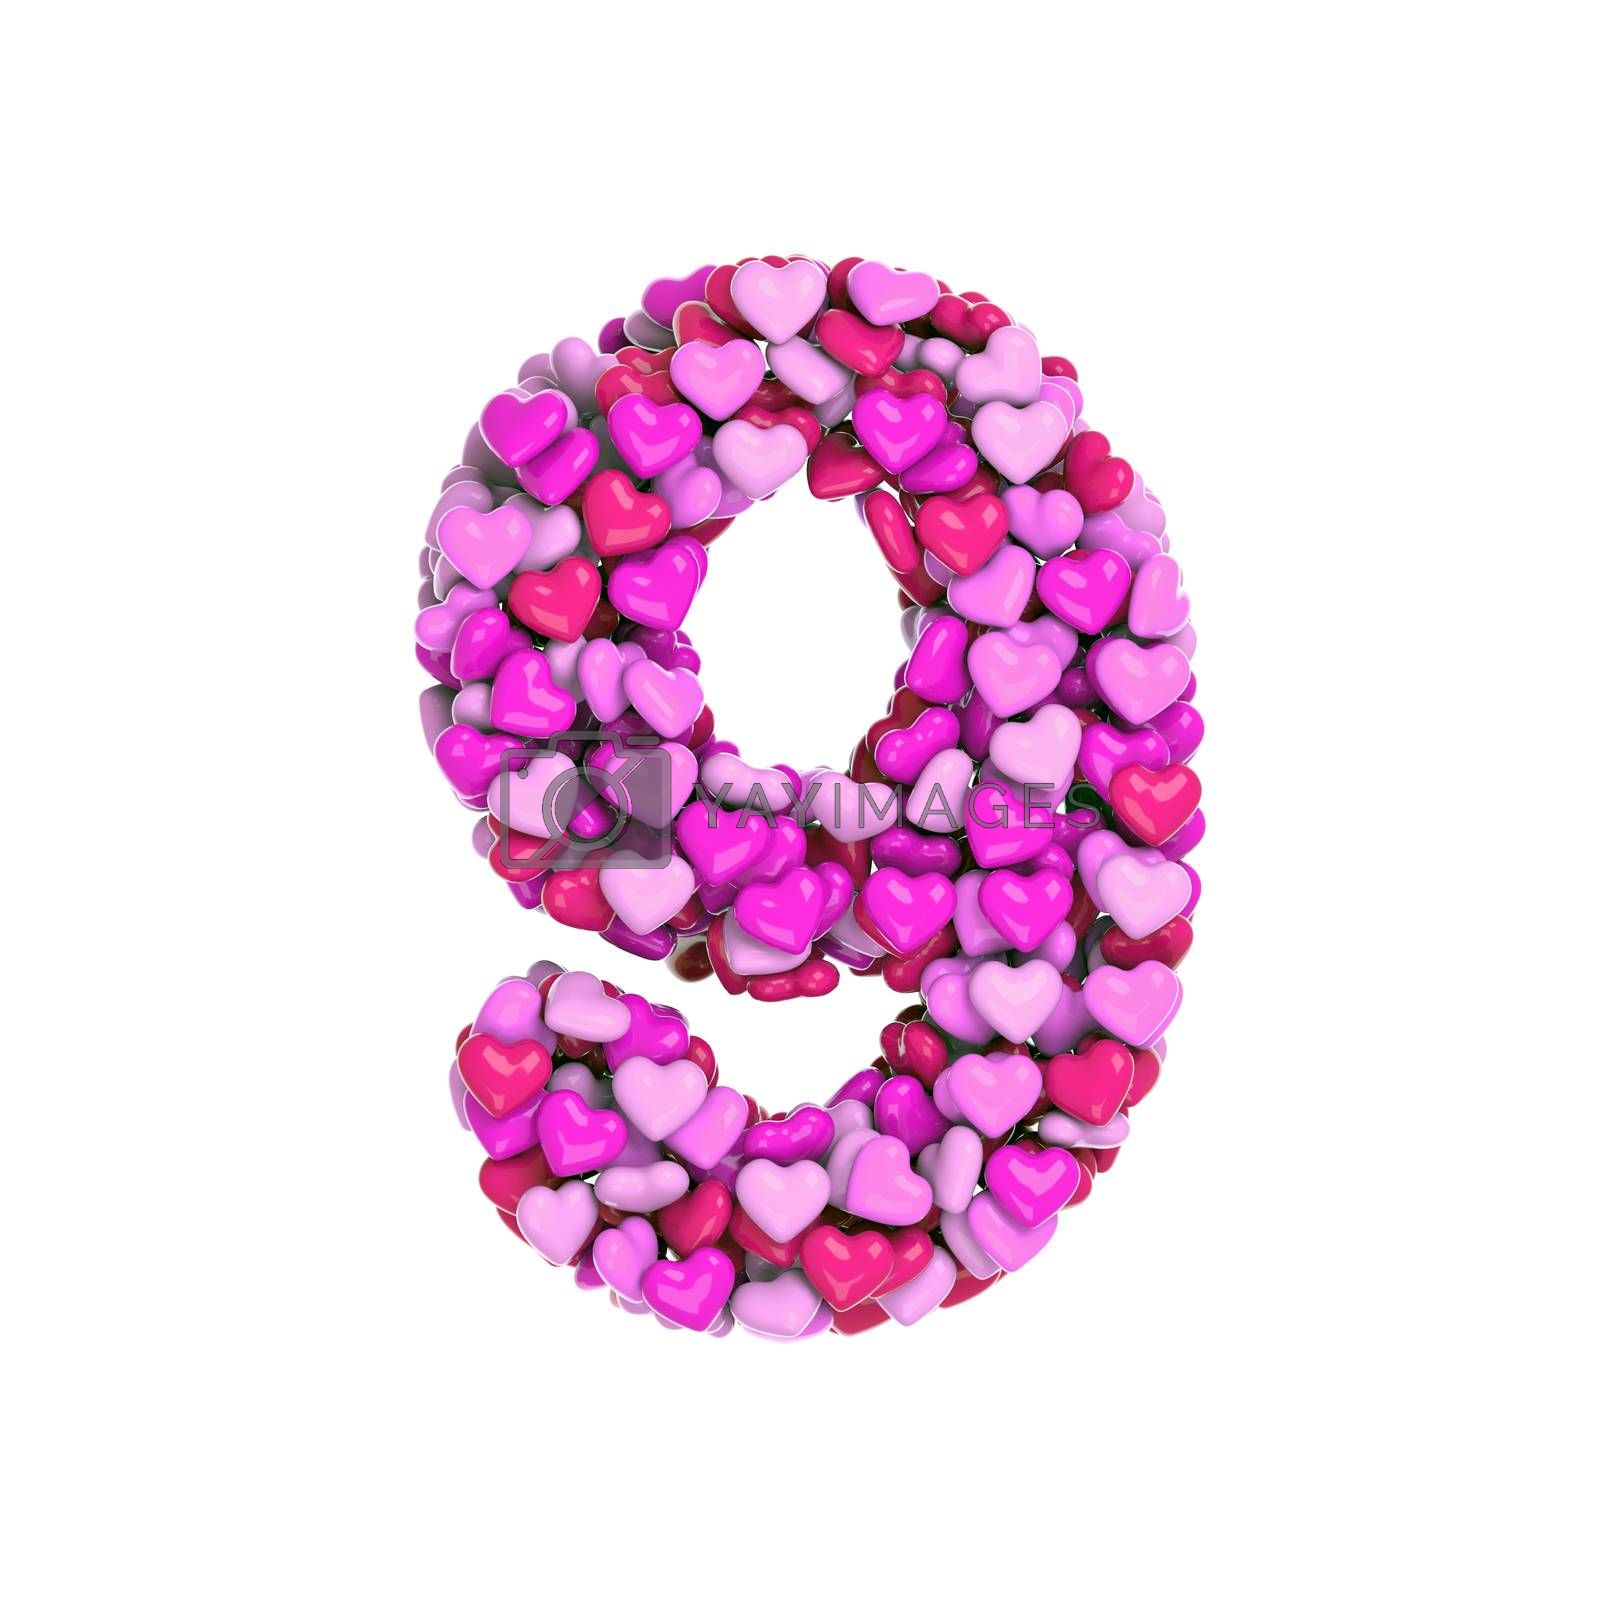 Valentine number 9 -  3d pink hearts digit - Love, passion or wedding concept by chrisroll